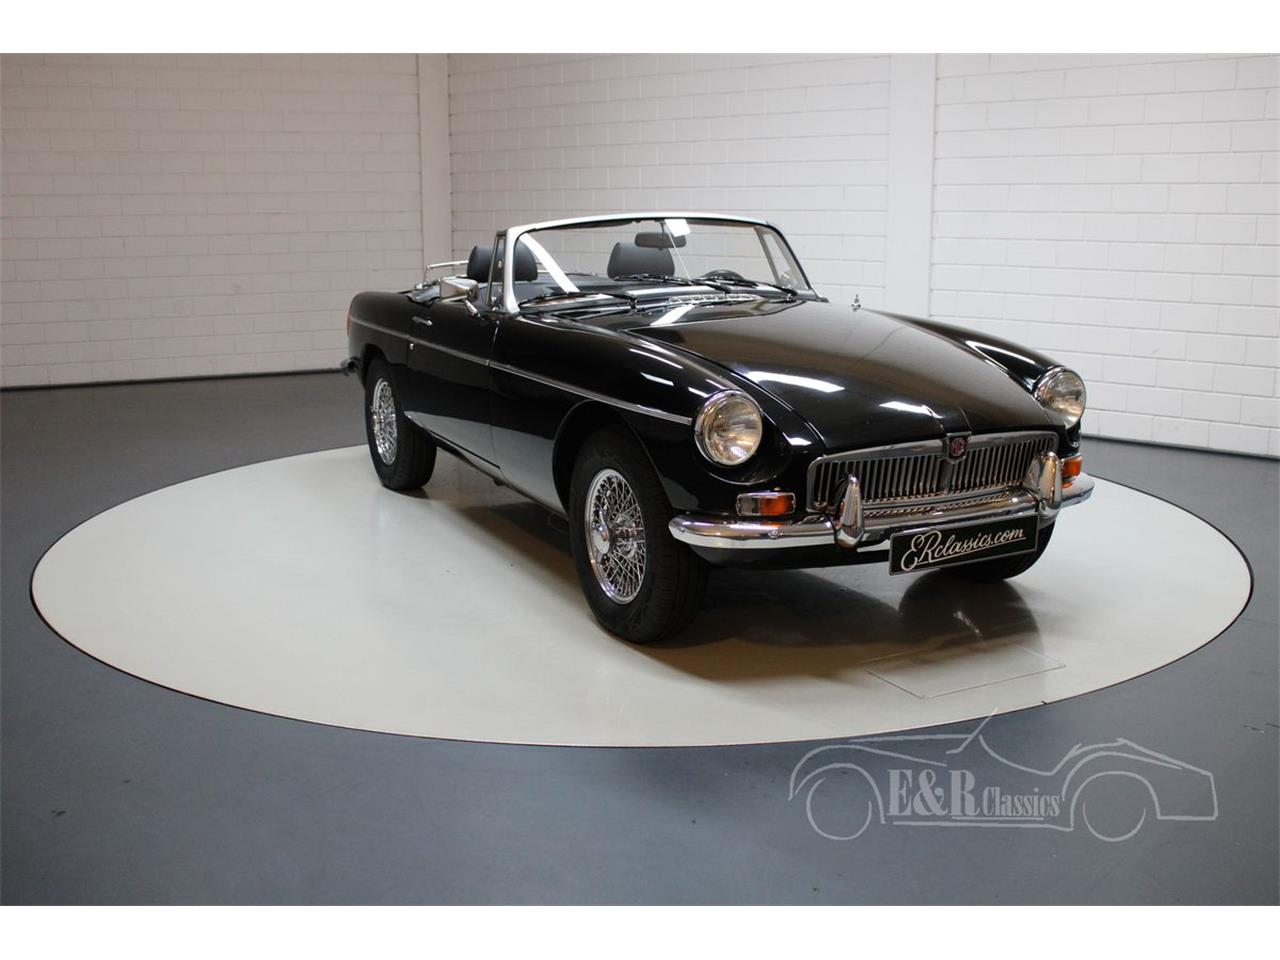 1979 MG MGB (CC-1421529) for sale in Waalwijk, Noord-Brabant